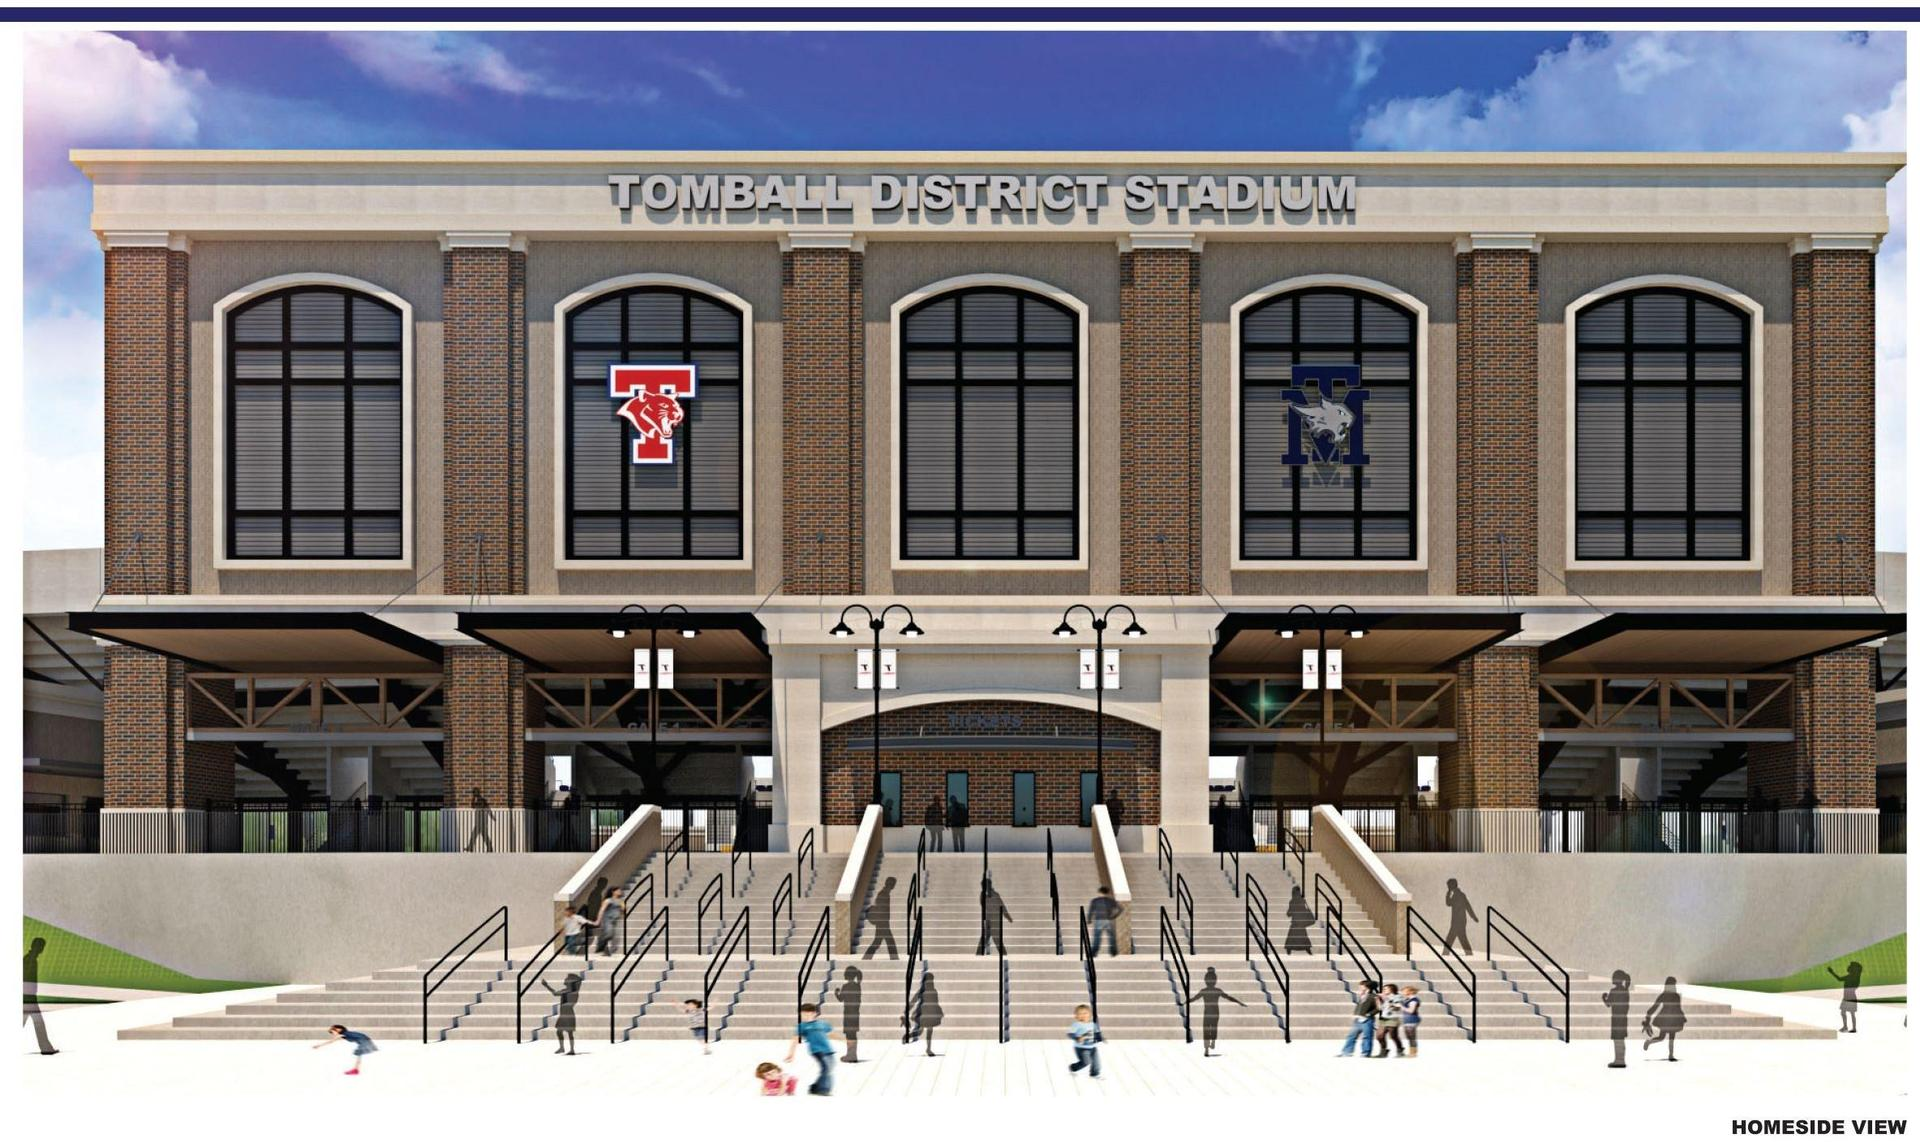 Drawing of Tomball ISD's stadium on which Halford Busby provided a schematic design estimate and a design development estimate